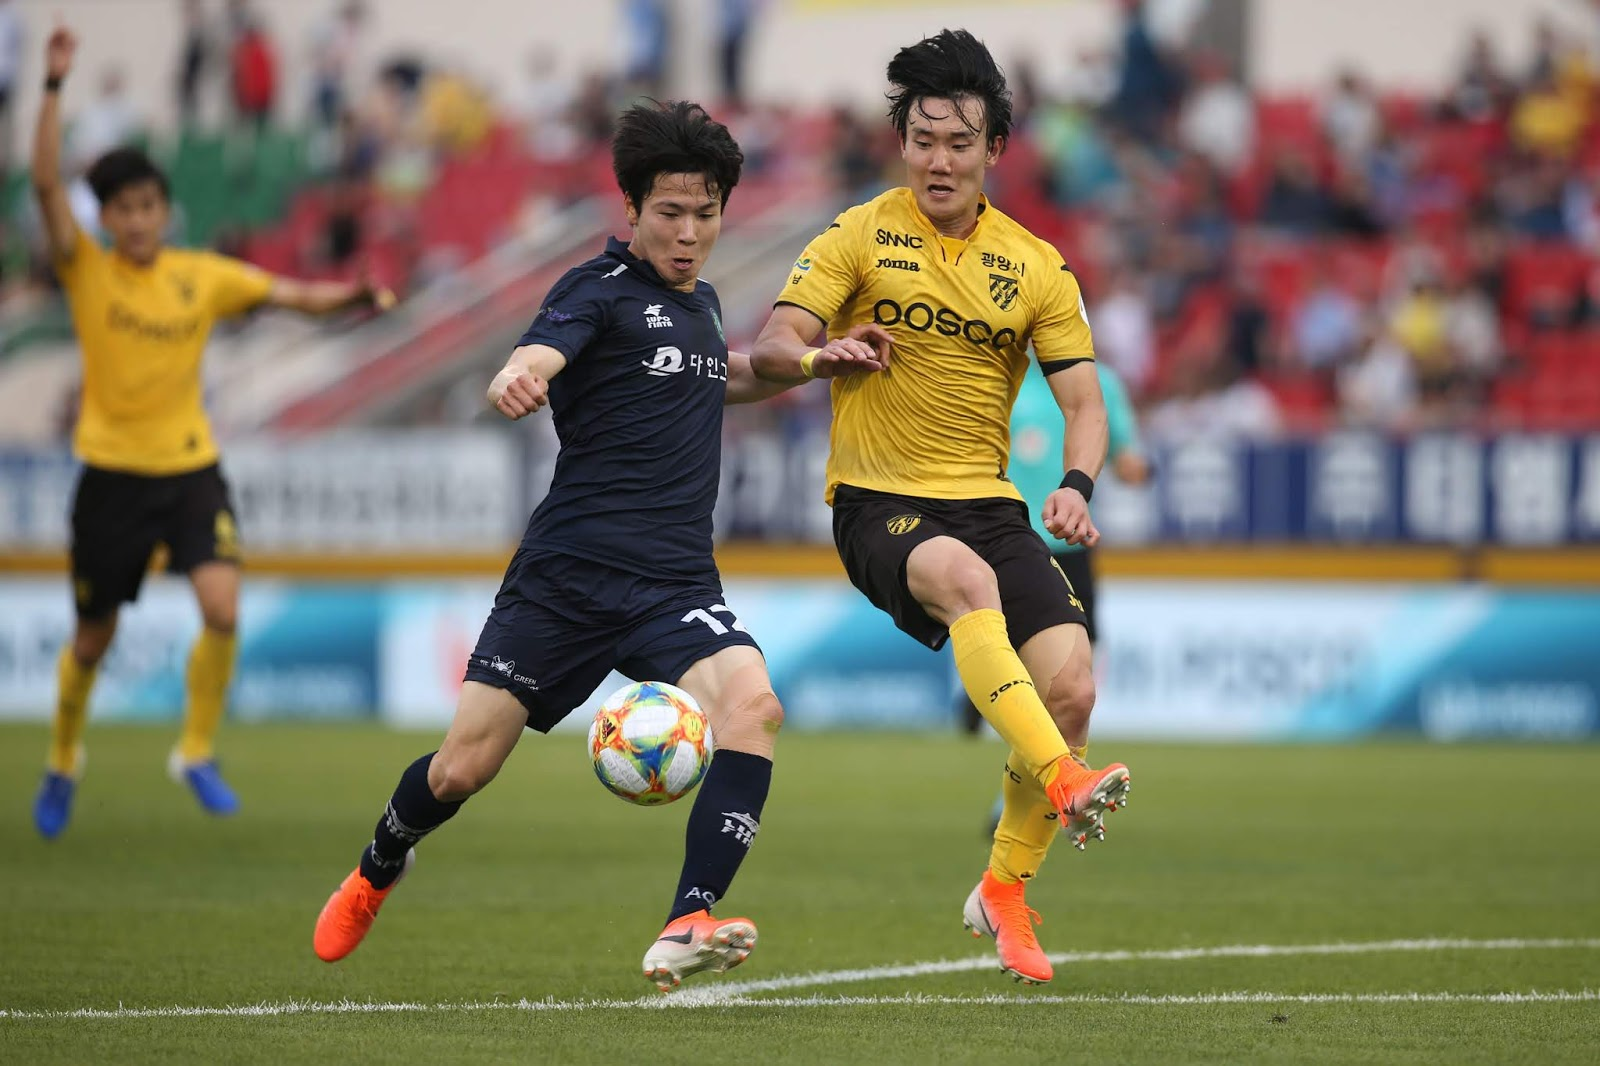 Preview: Jeonnam Dragons vs Ansan Greeners K League 2 Round 36